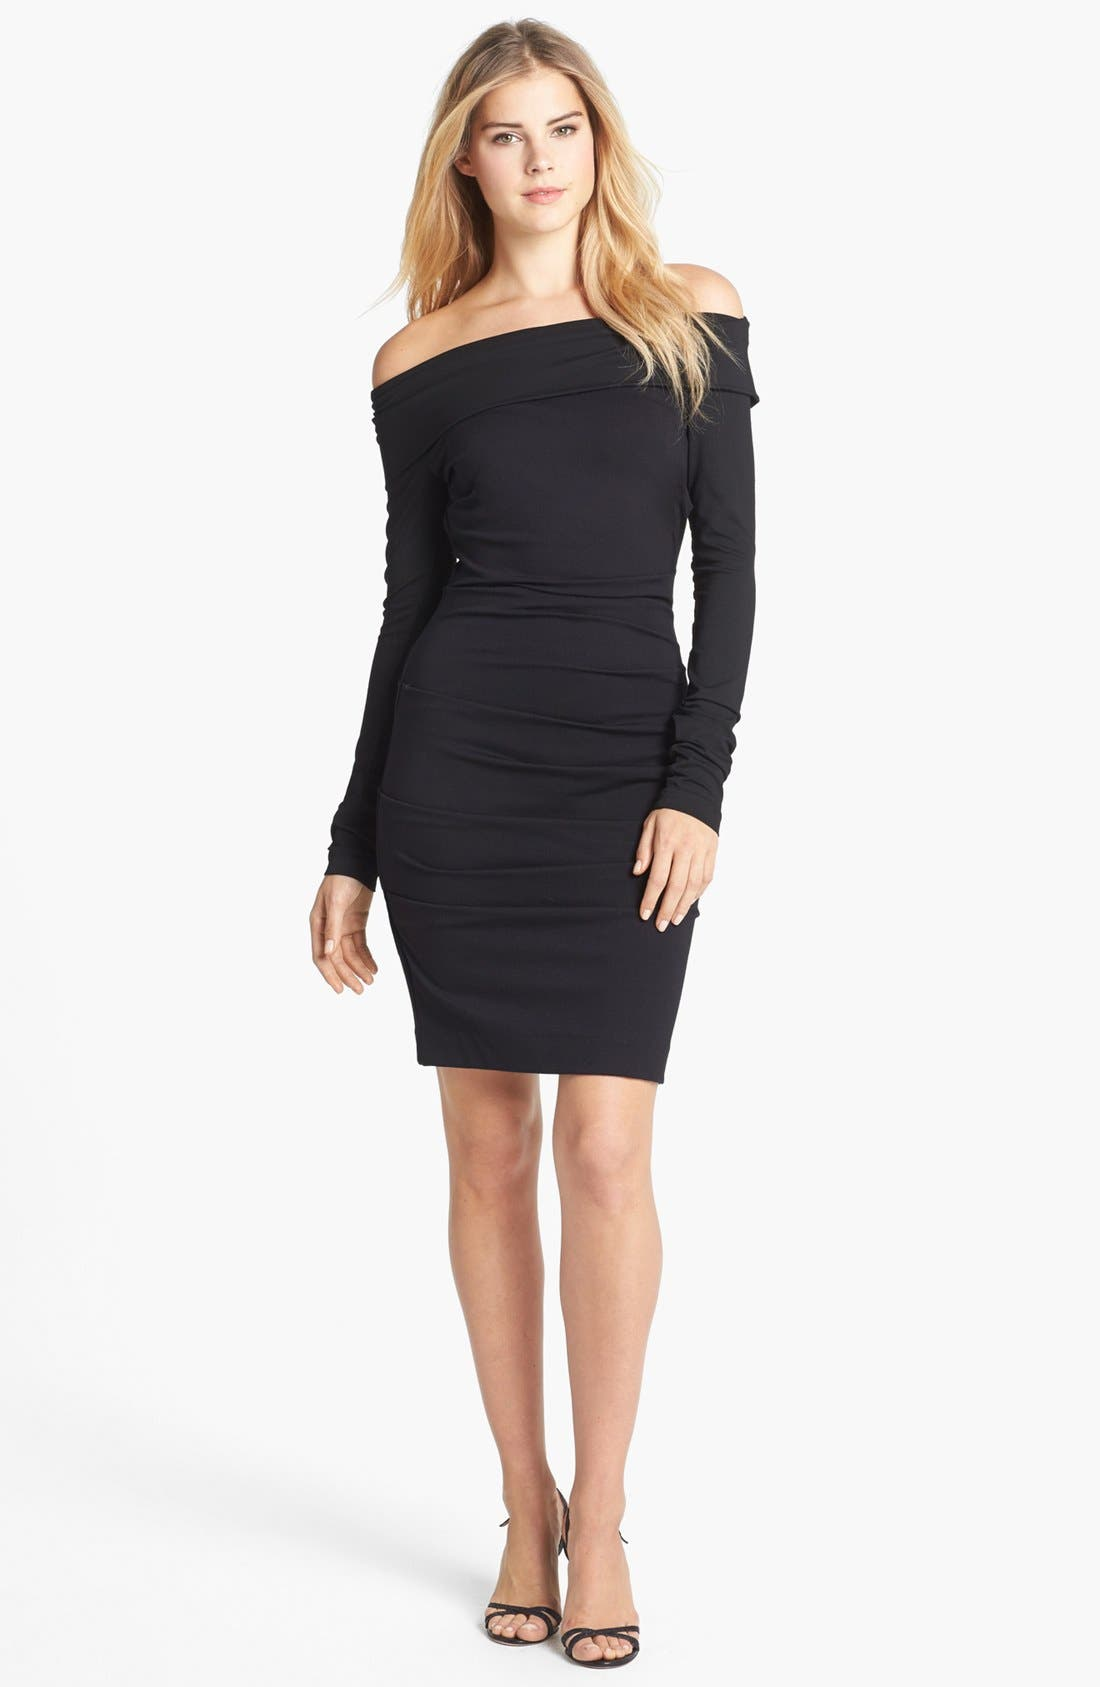 Alternate Image 1 Selected - Nicole Miller Off Shoulder Ponte Knit Sheath Dress